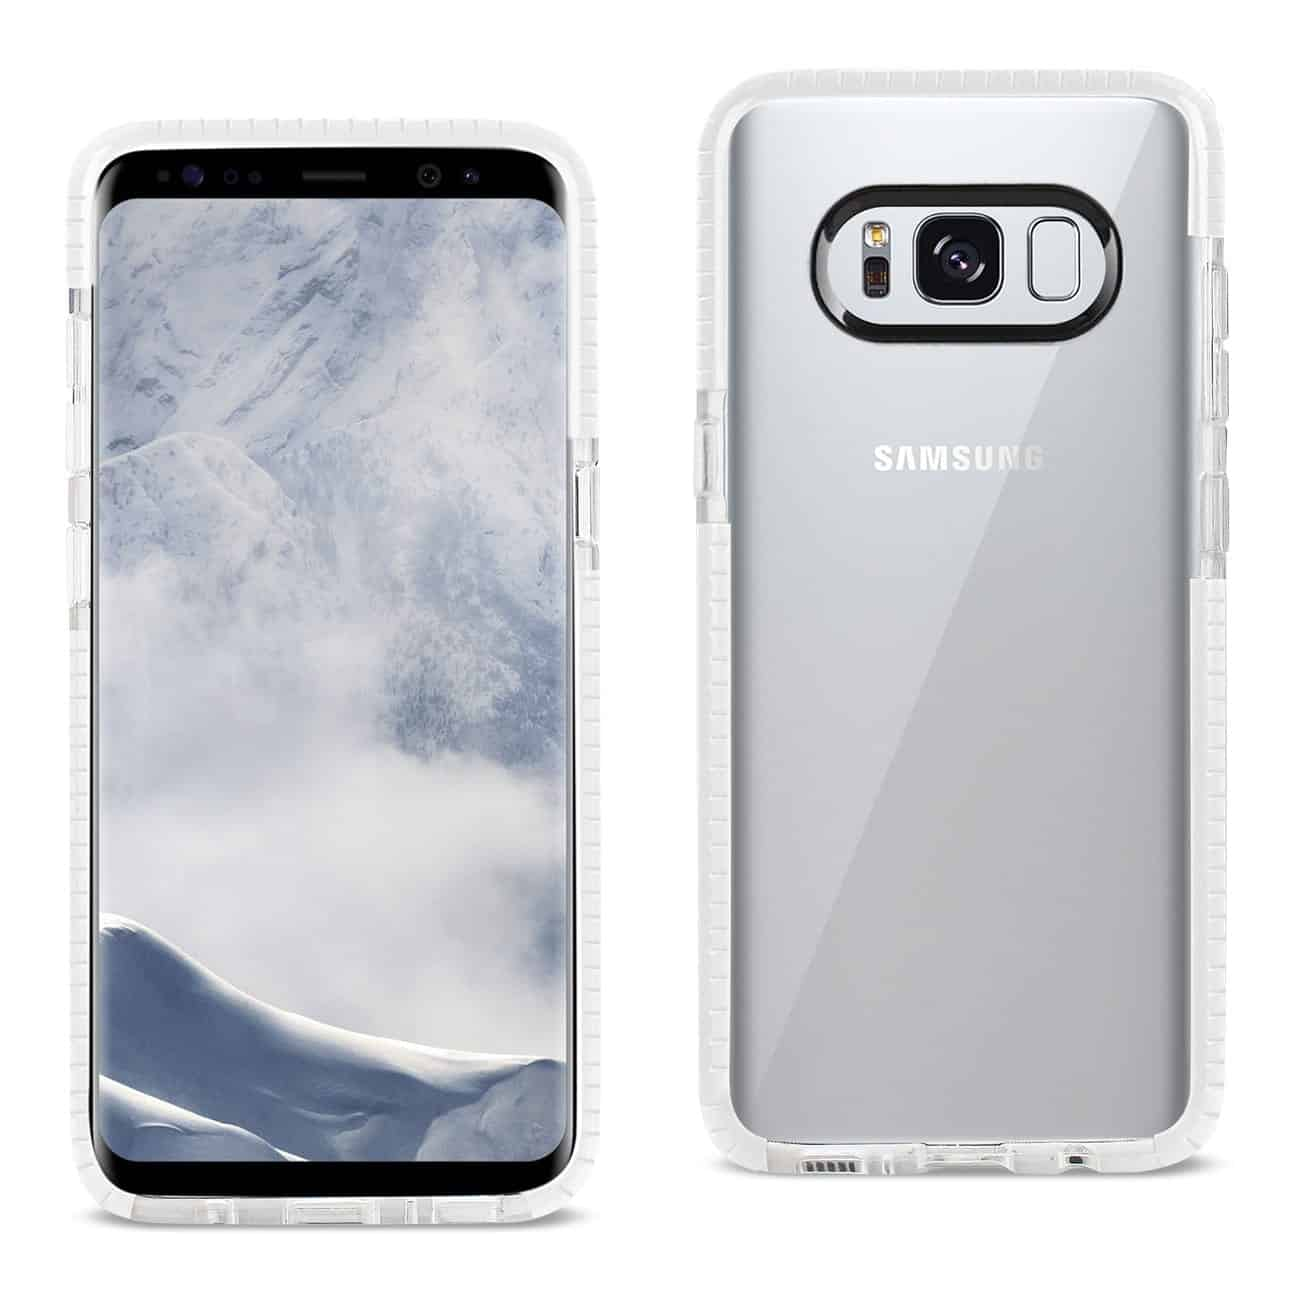 SAMSUNG GALAXY S8 EDGE/ S8 PLUS SOFT TRANSPARENT TPU CASE IN CLEAR WHITE